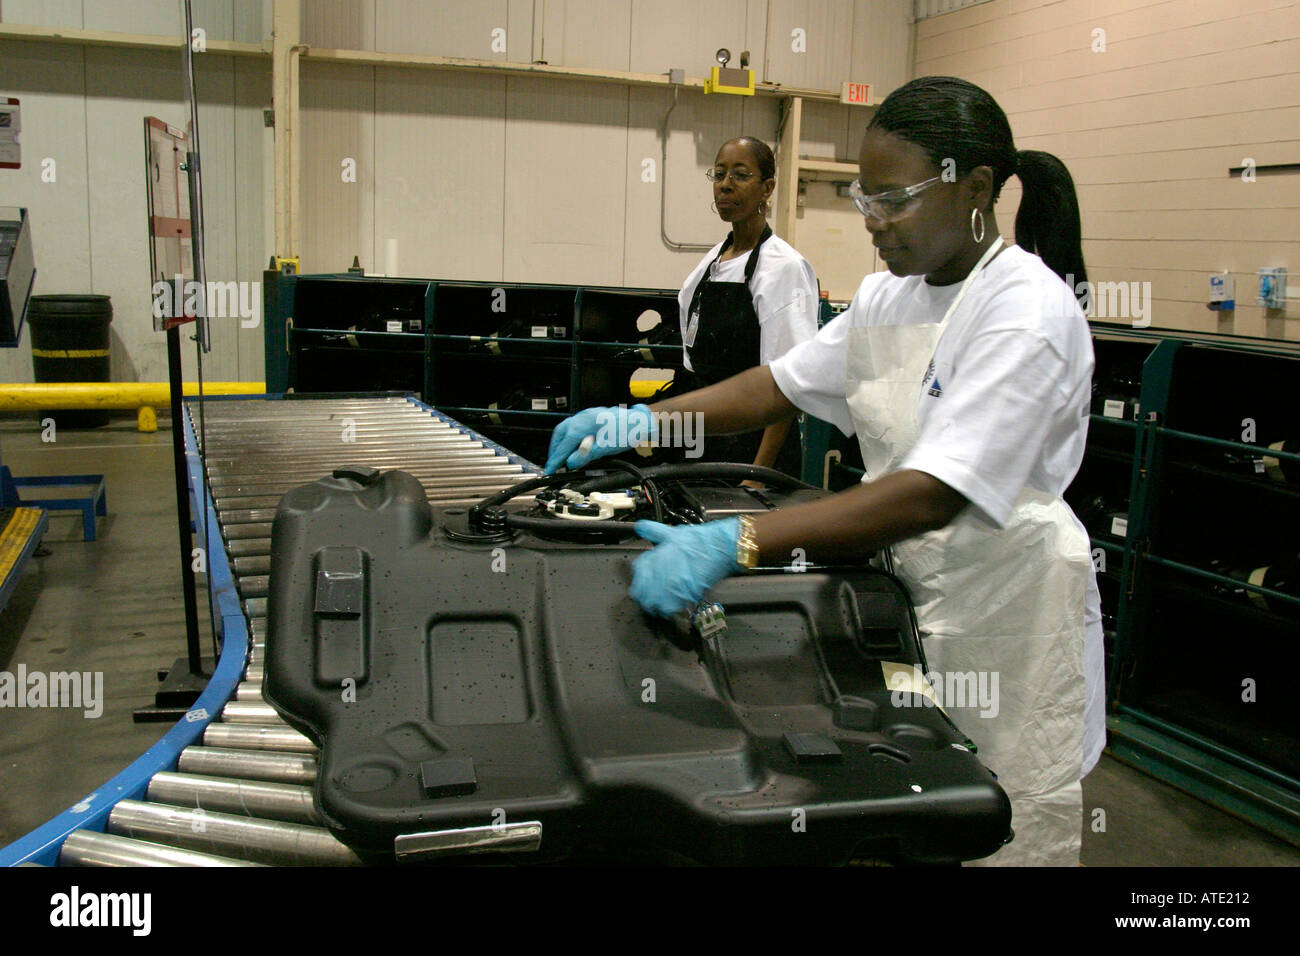 Worker at Vitec inspects newly manufactured automobile gas tank destined for General Motors - Stock Image